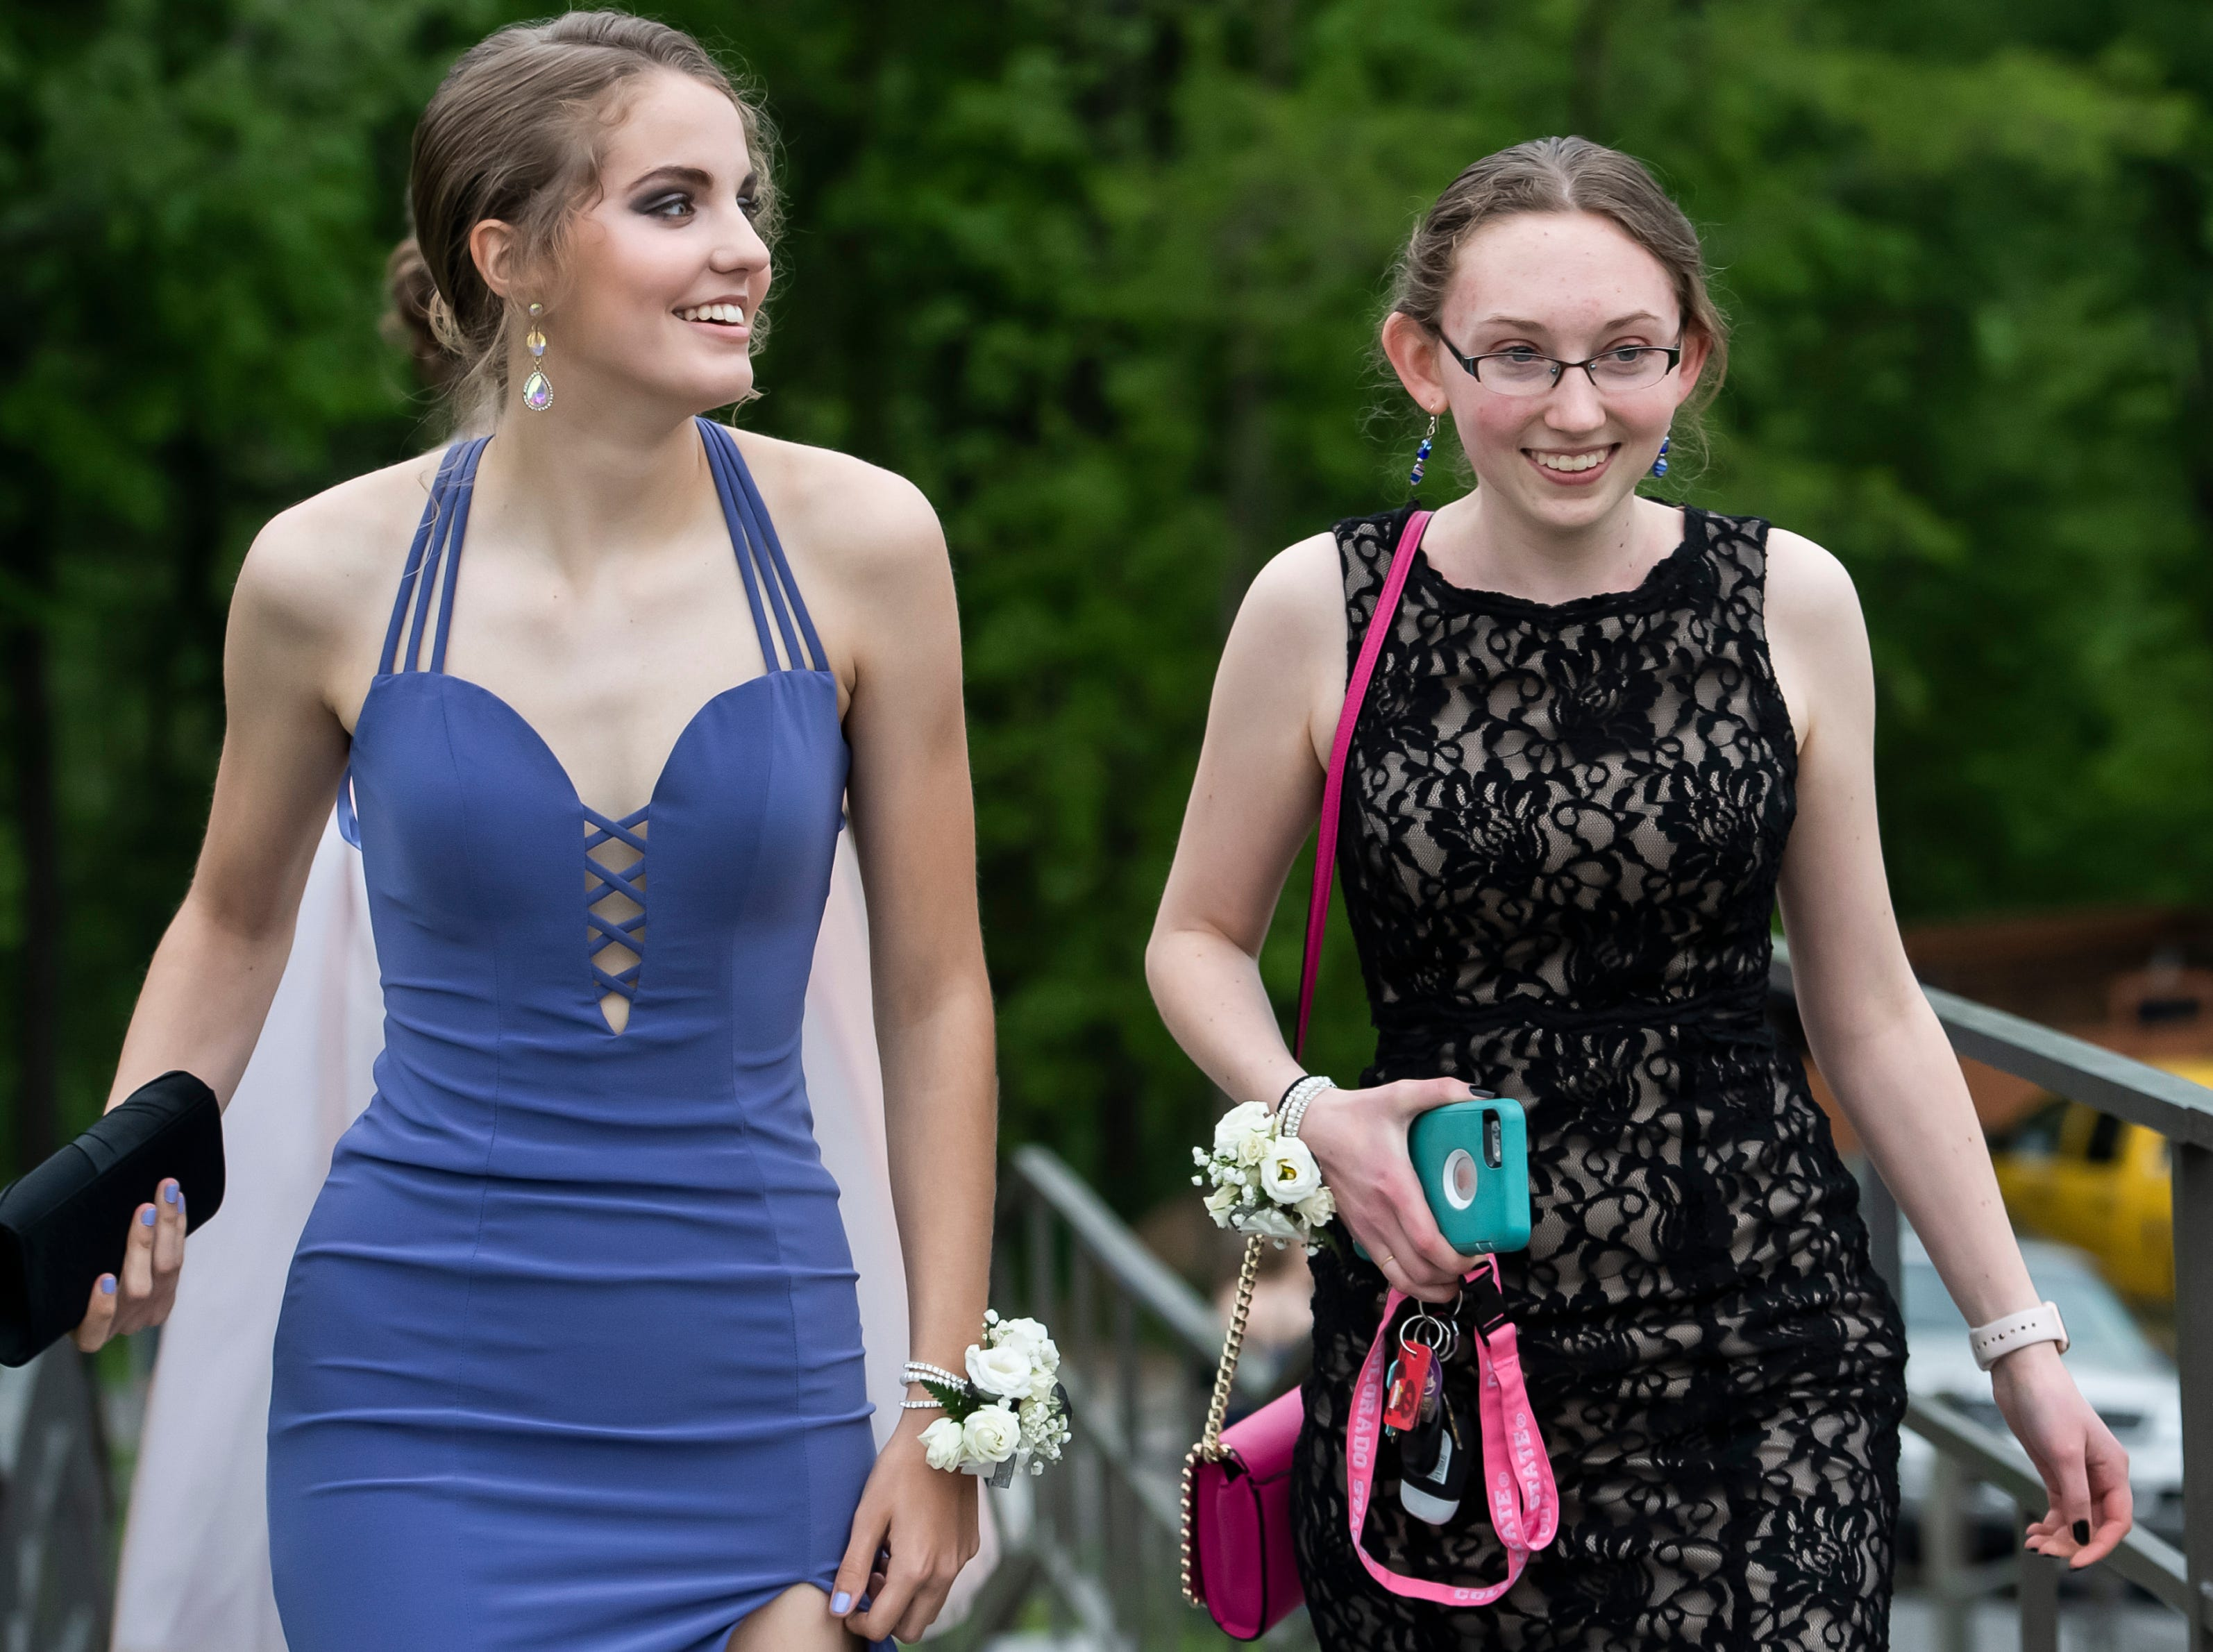 Students arrive at Biglerville High School's prom at the Lodges at Gettysburg on Friday, May 3, 2019.